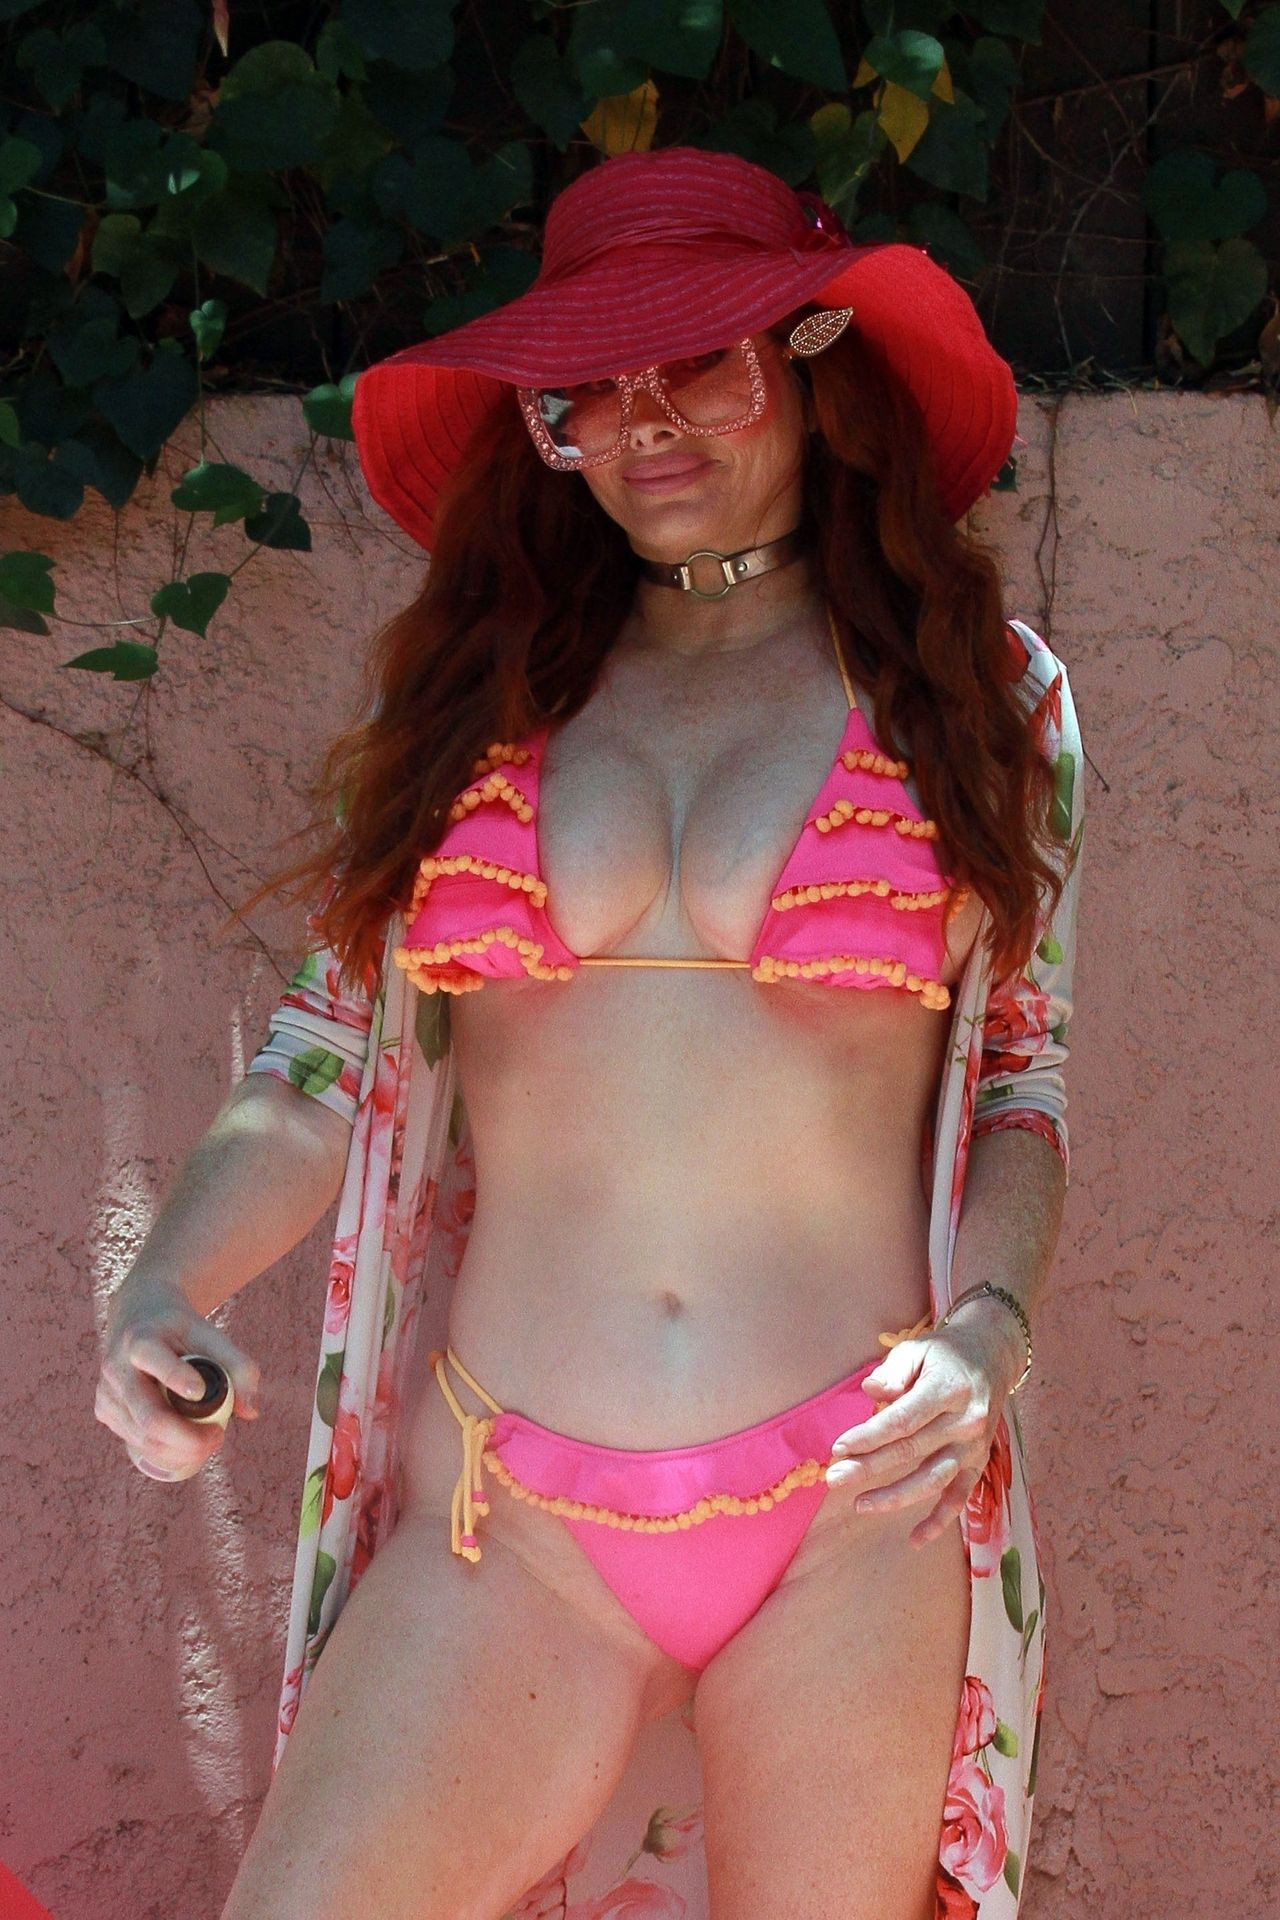 Phoebe Price Sexy fappenings.com 2 5